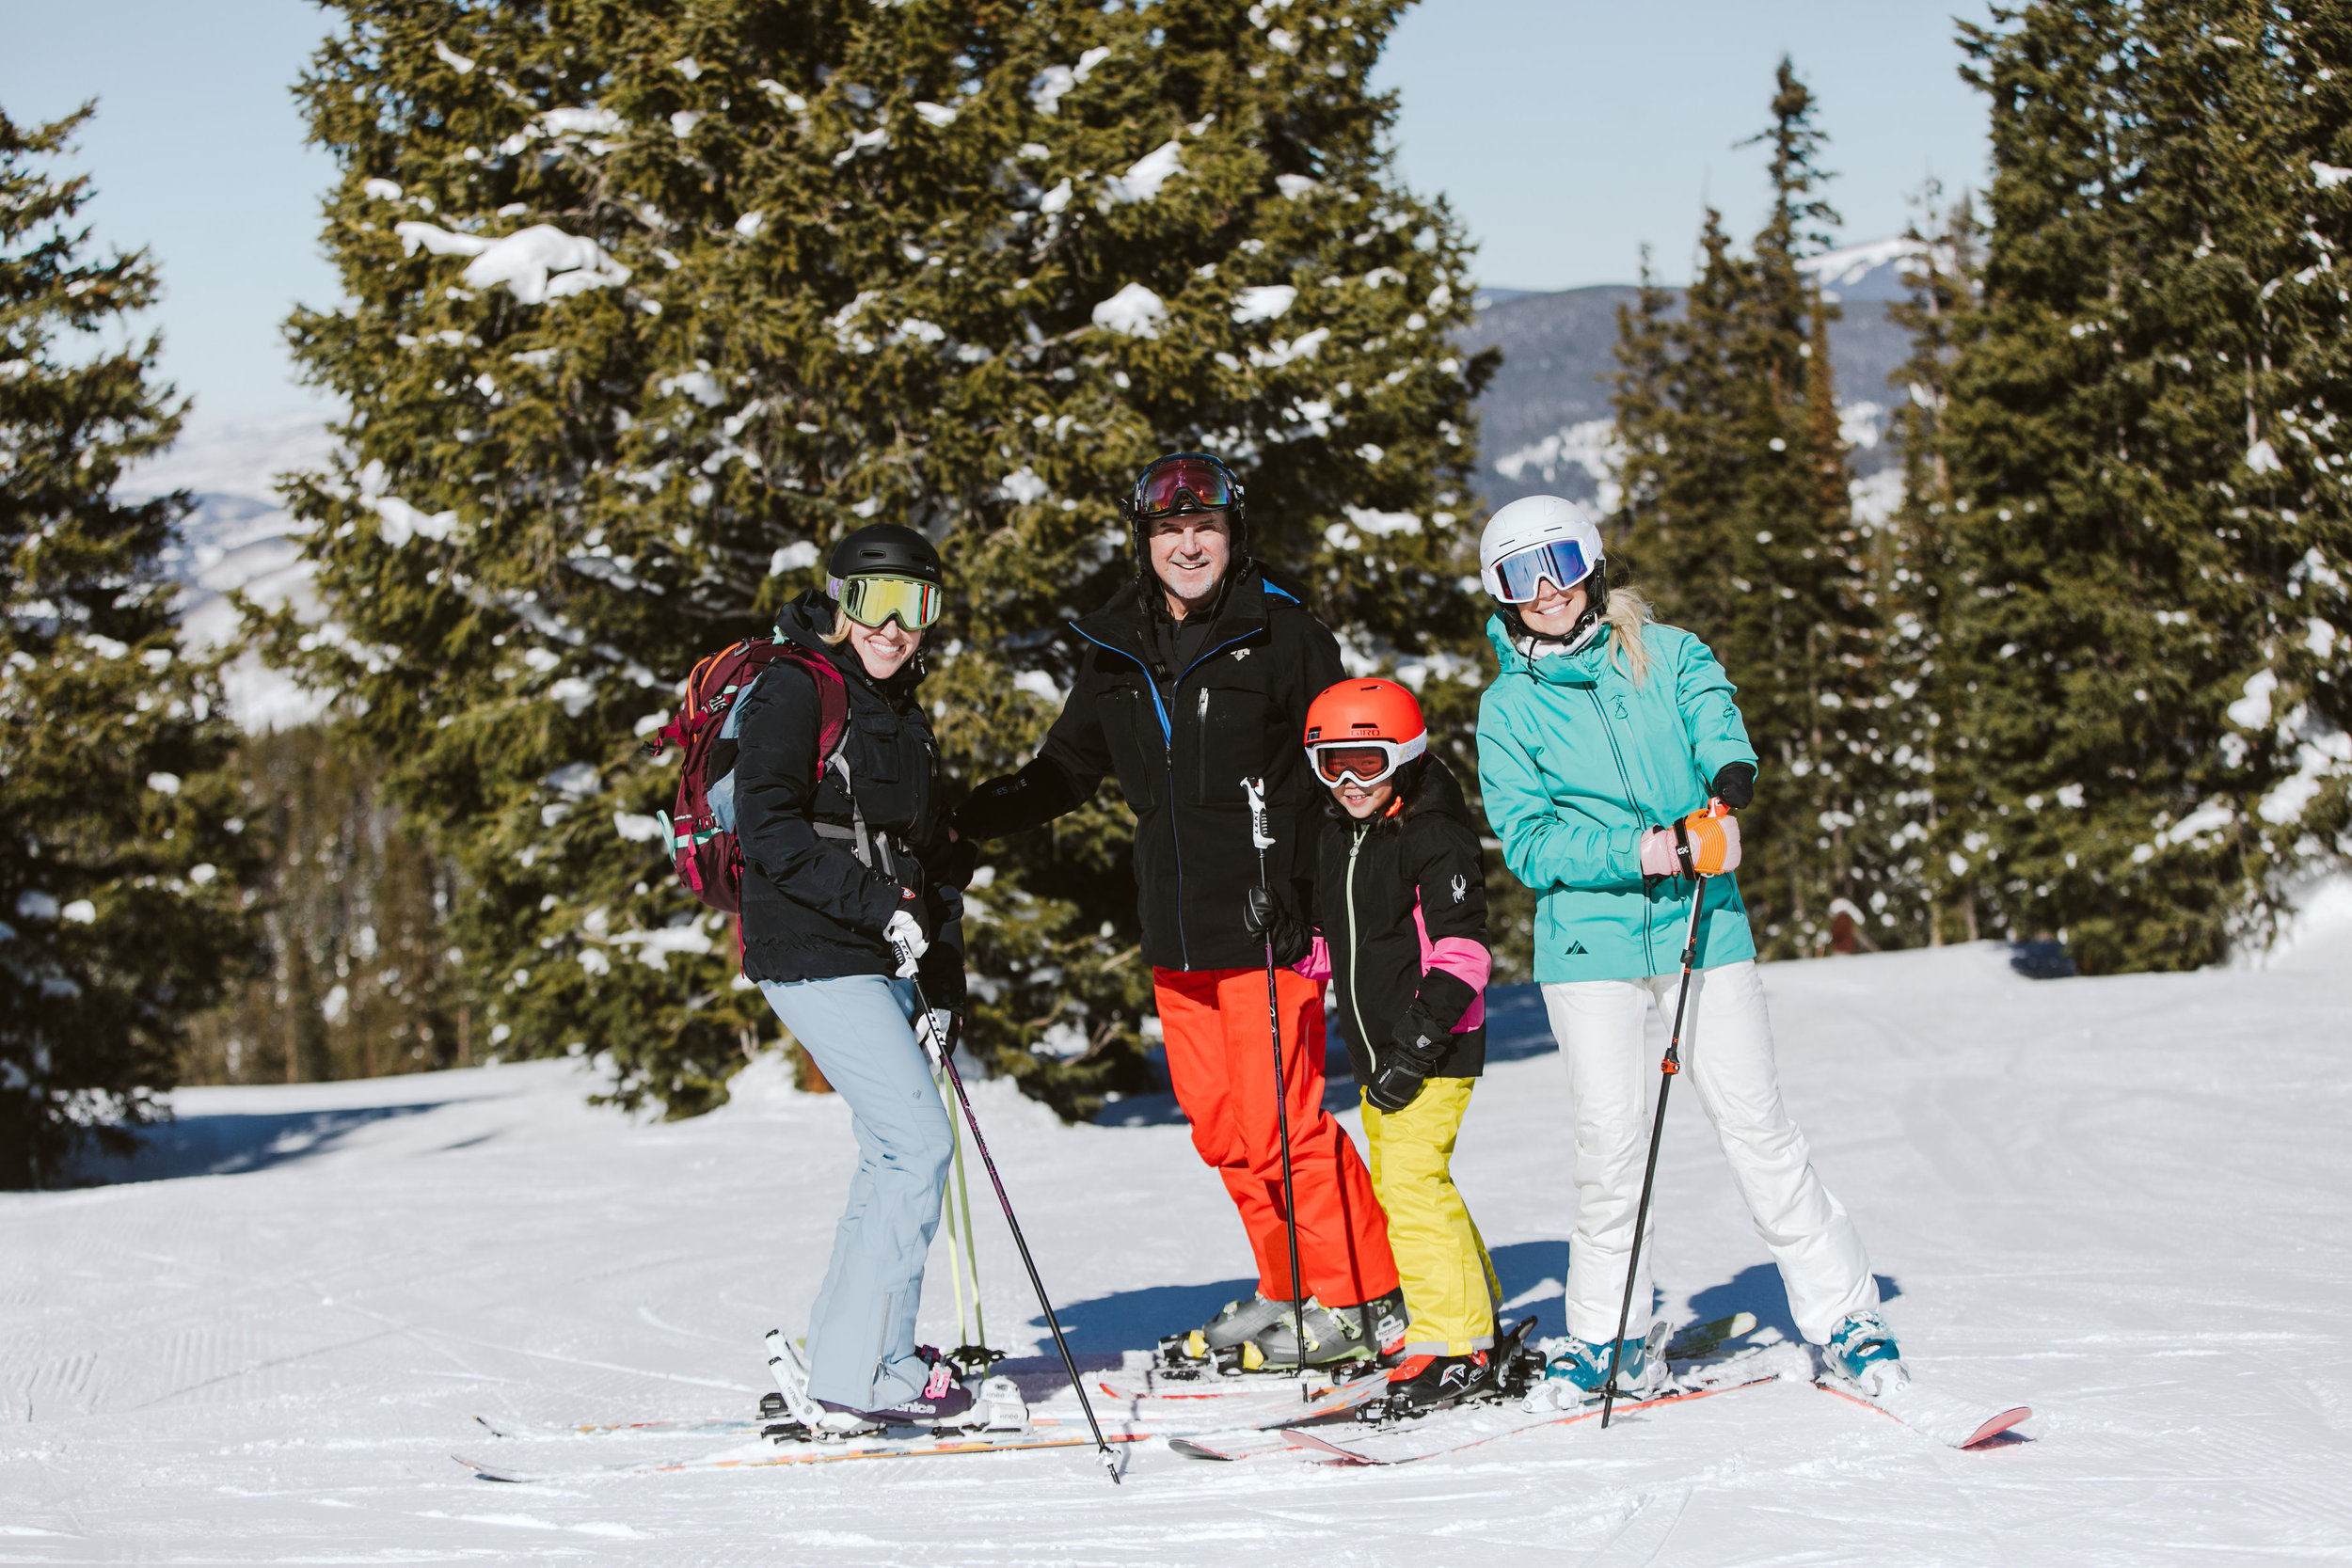 Krista (Cali's mom), Cali, my dad (because after all… he's the one who taught me to ski) and me on the top of Sourdough, Vail!